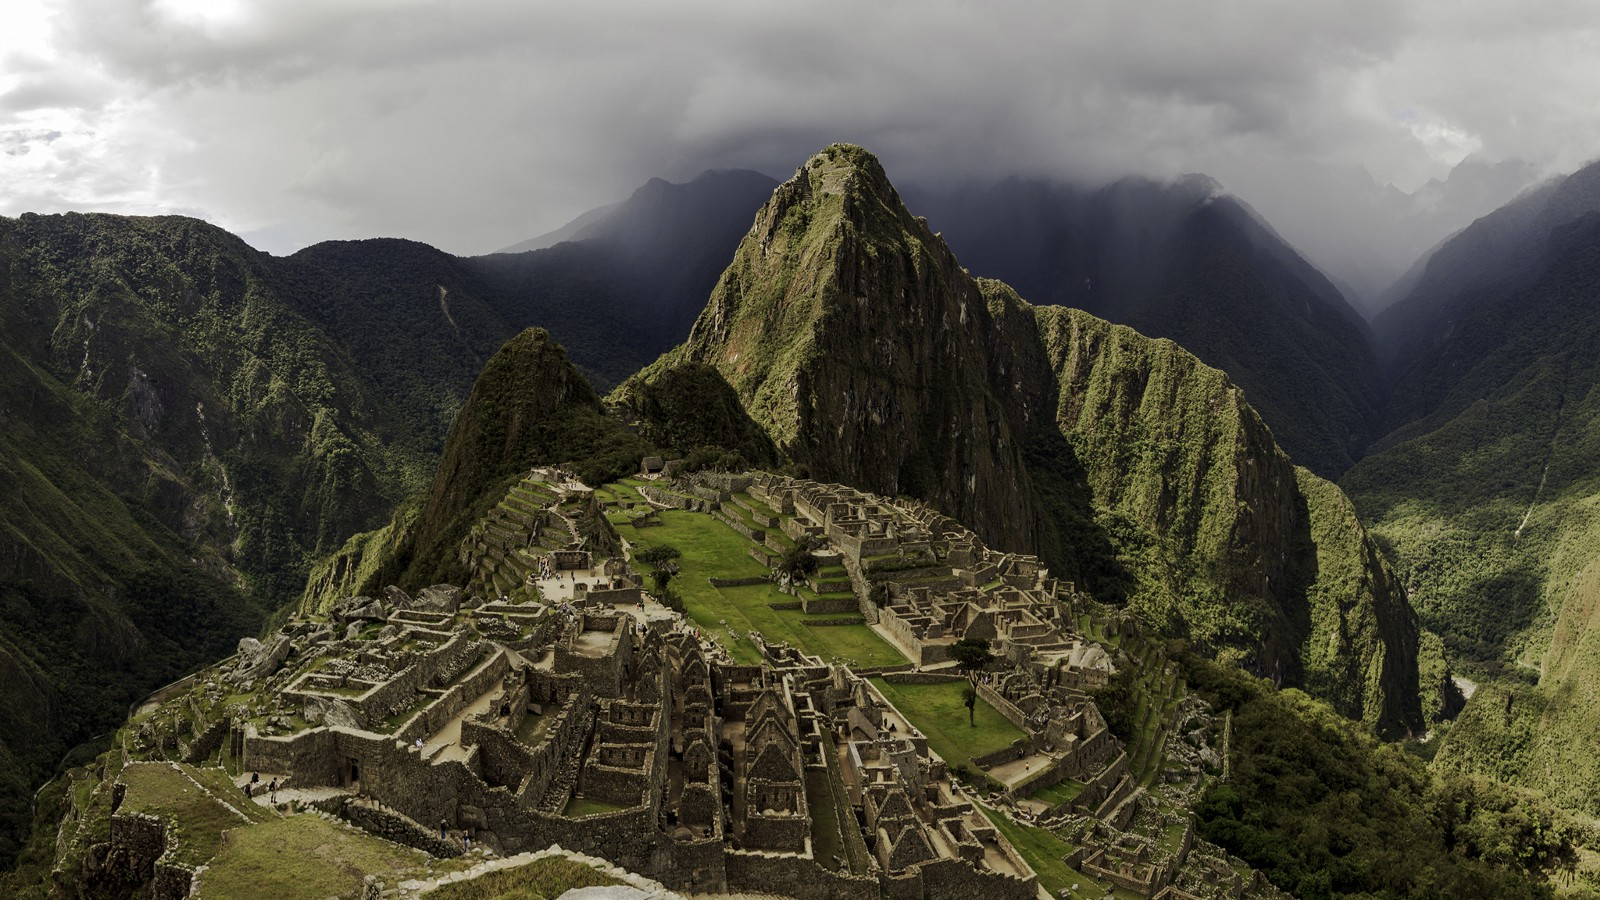 Machu Picchu and surrounding mountains, Peru